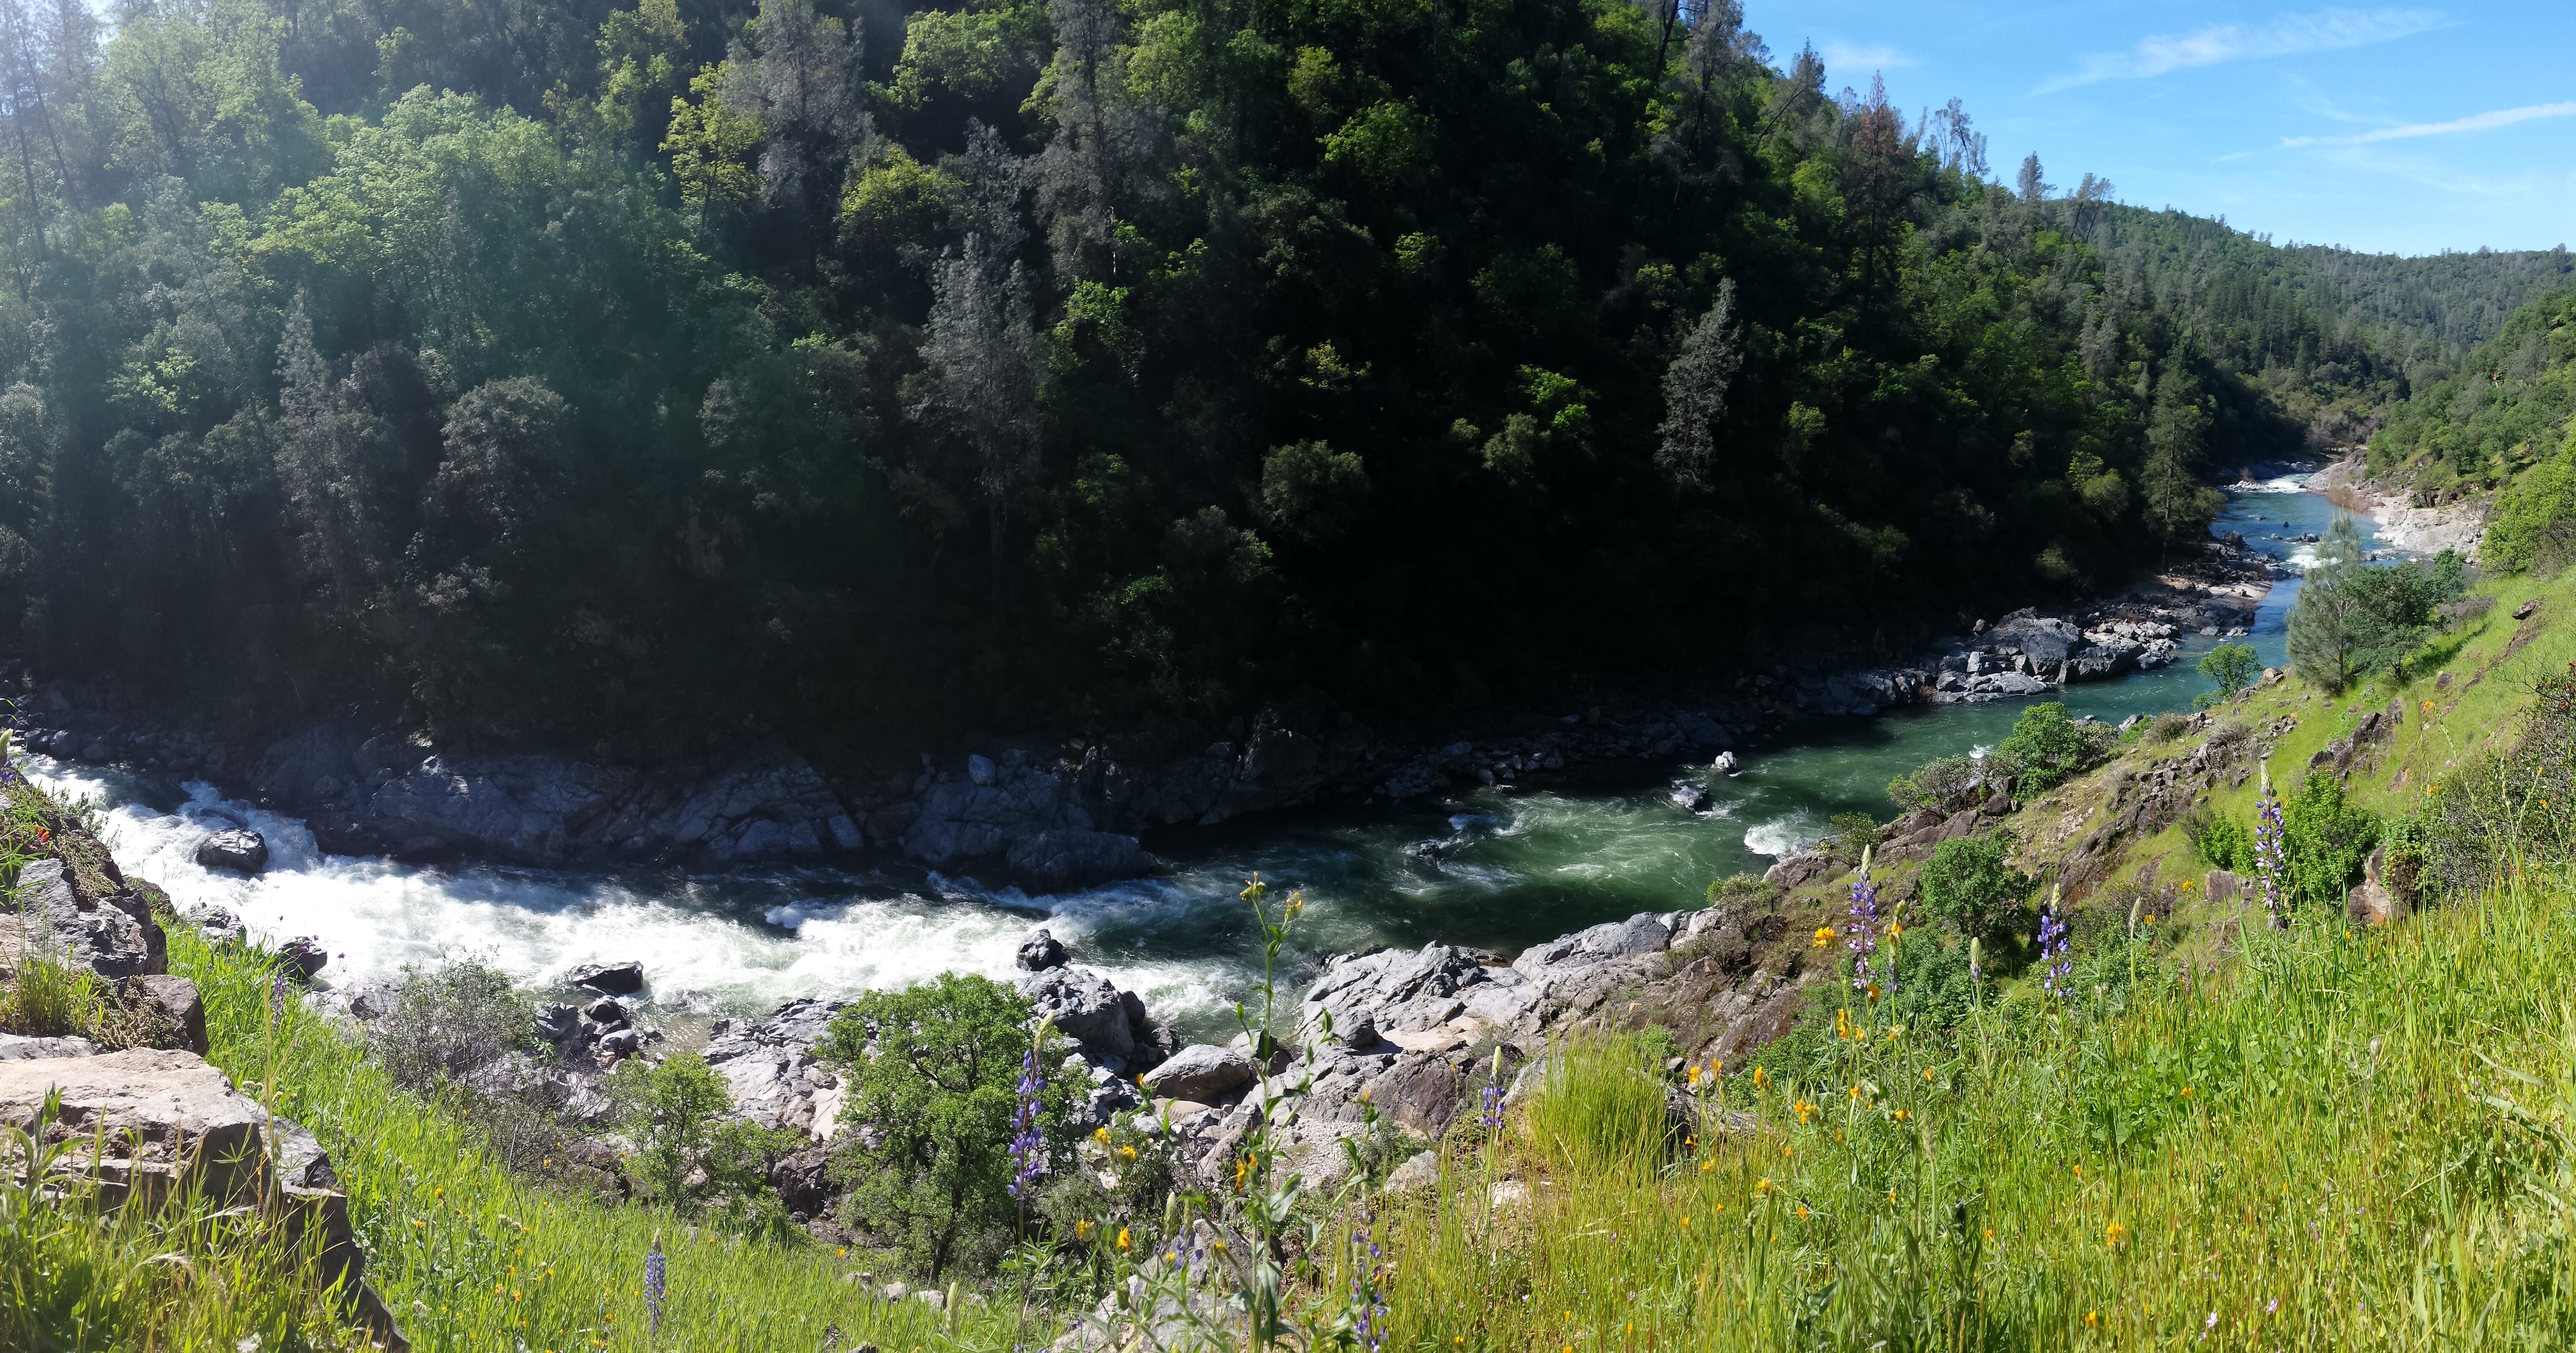 Buttermilk Bend, South Yuba River. Photo by Carrie Hoffer